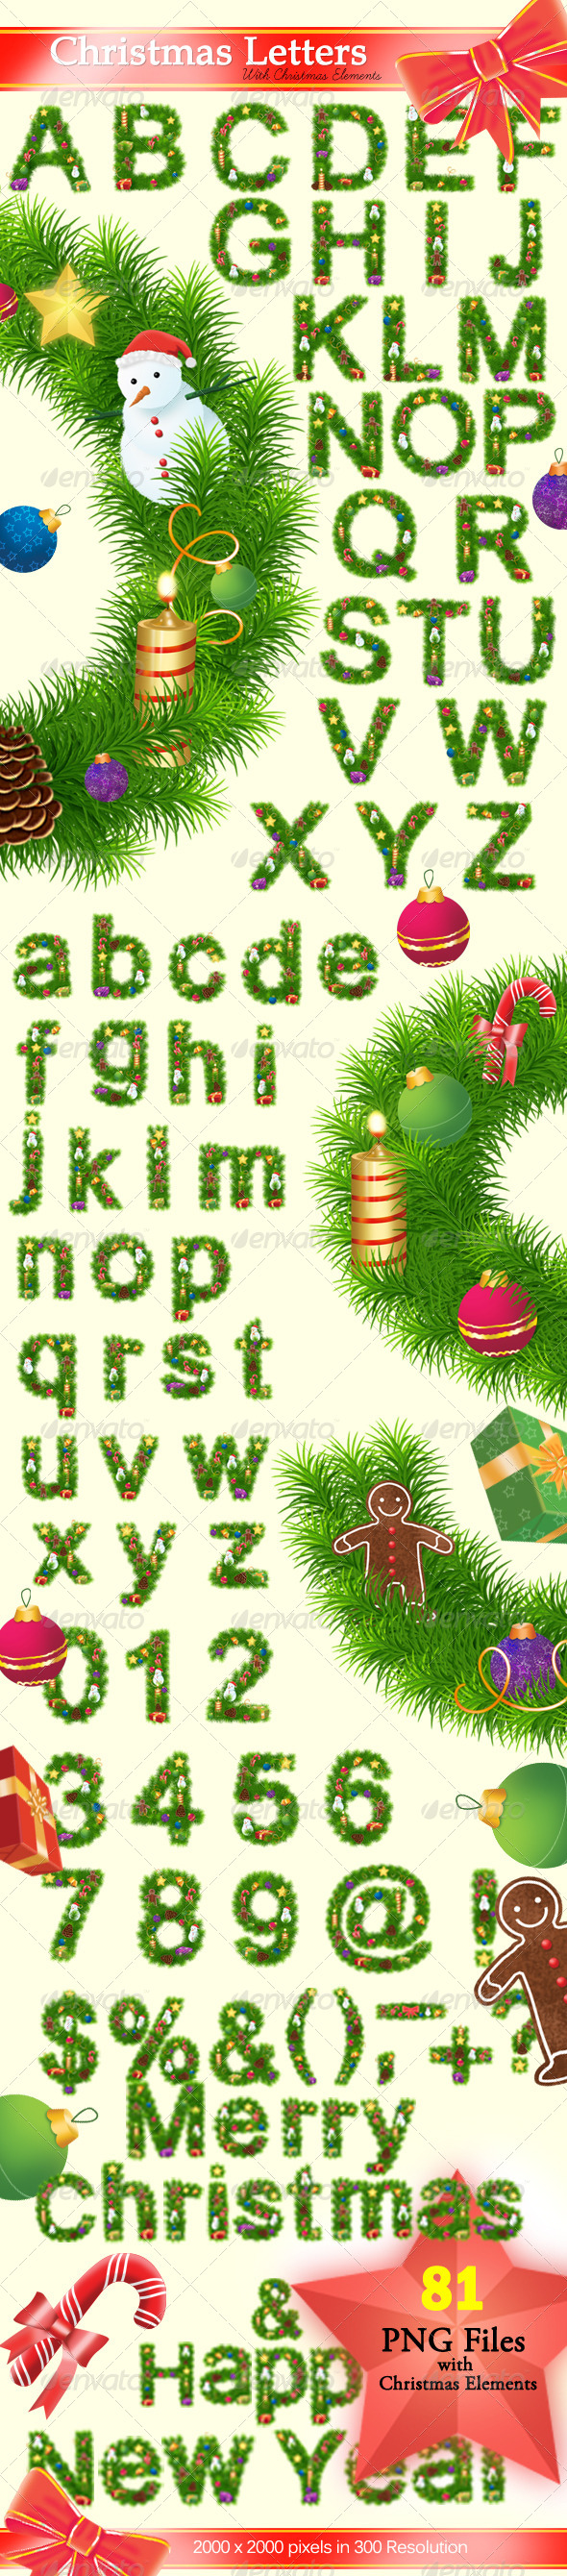 GraphicRiver Christmas Letters 6276676